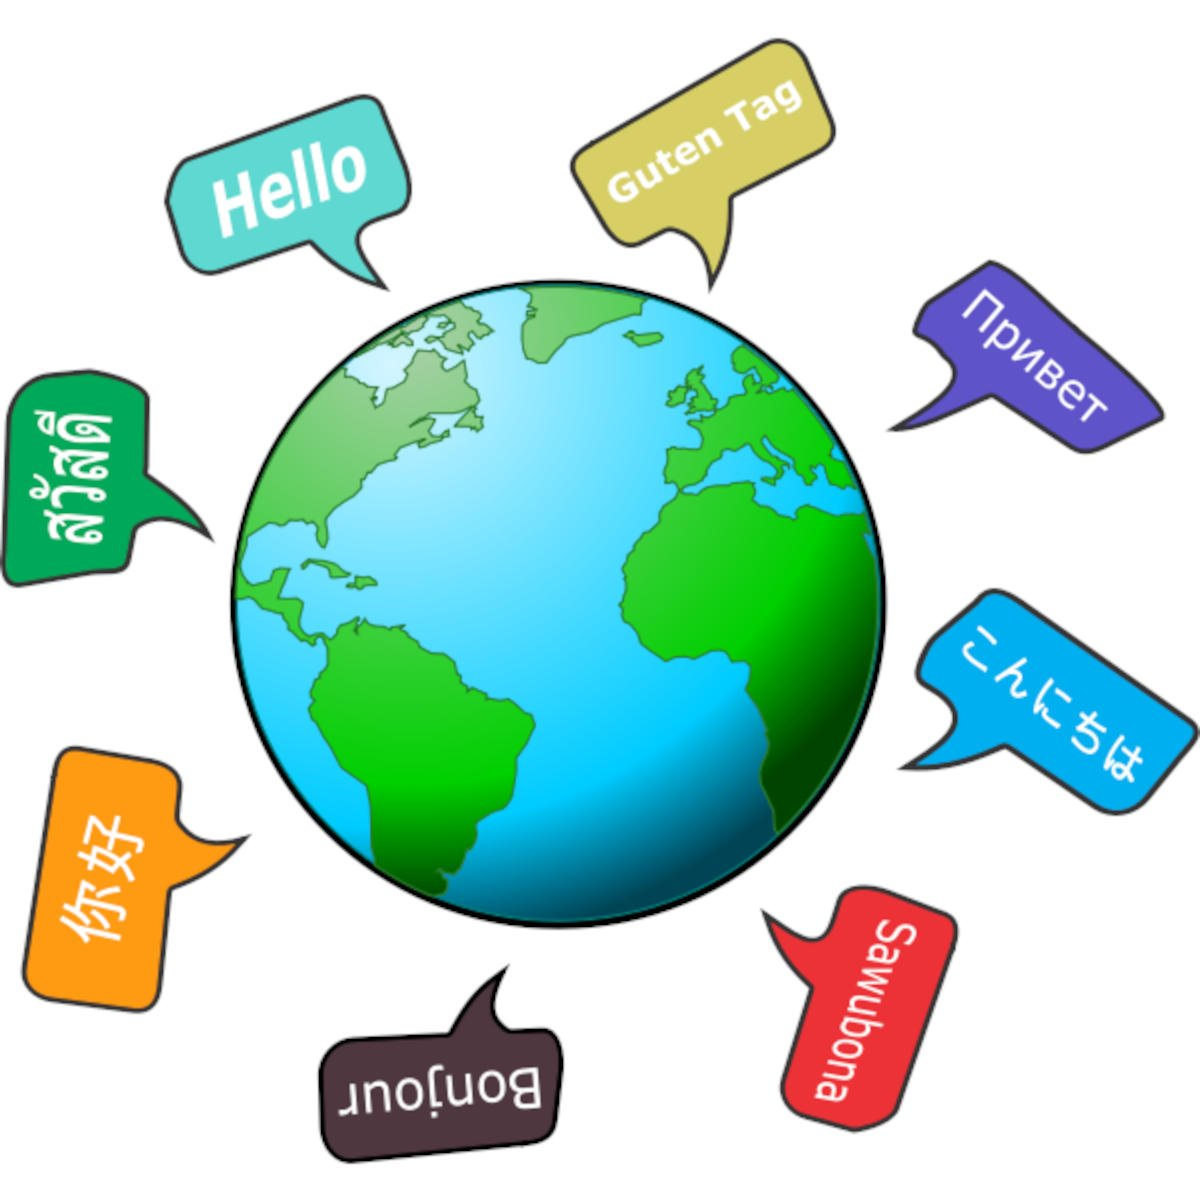 language-learning-©-iStock-feature-image Homepage